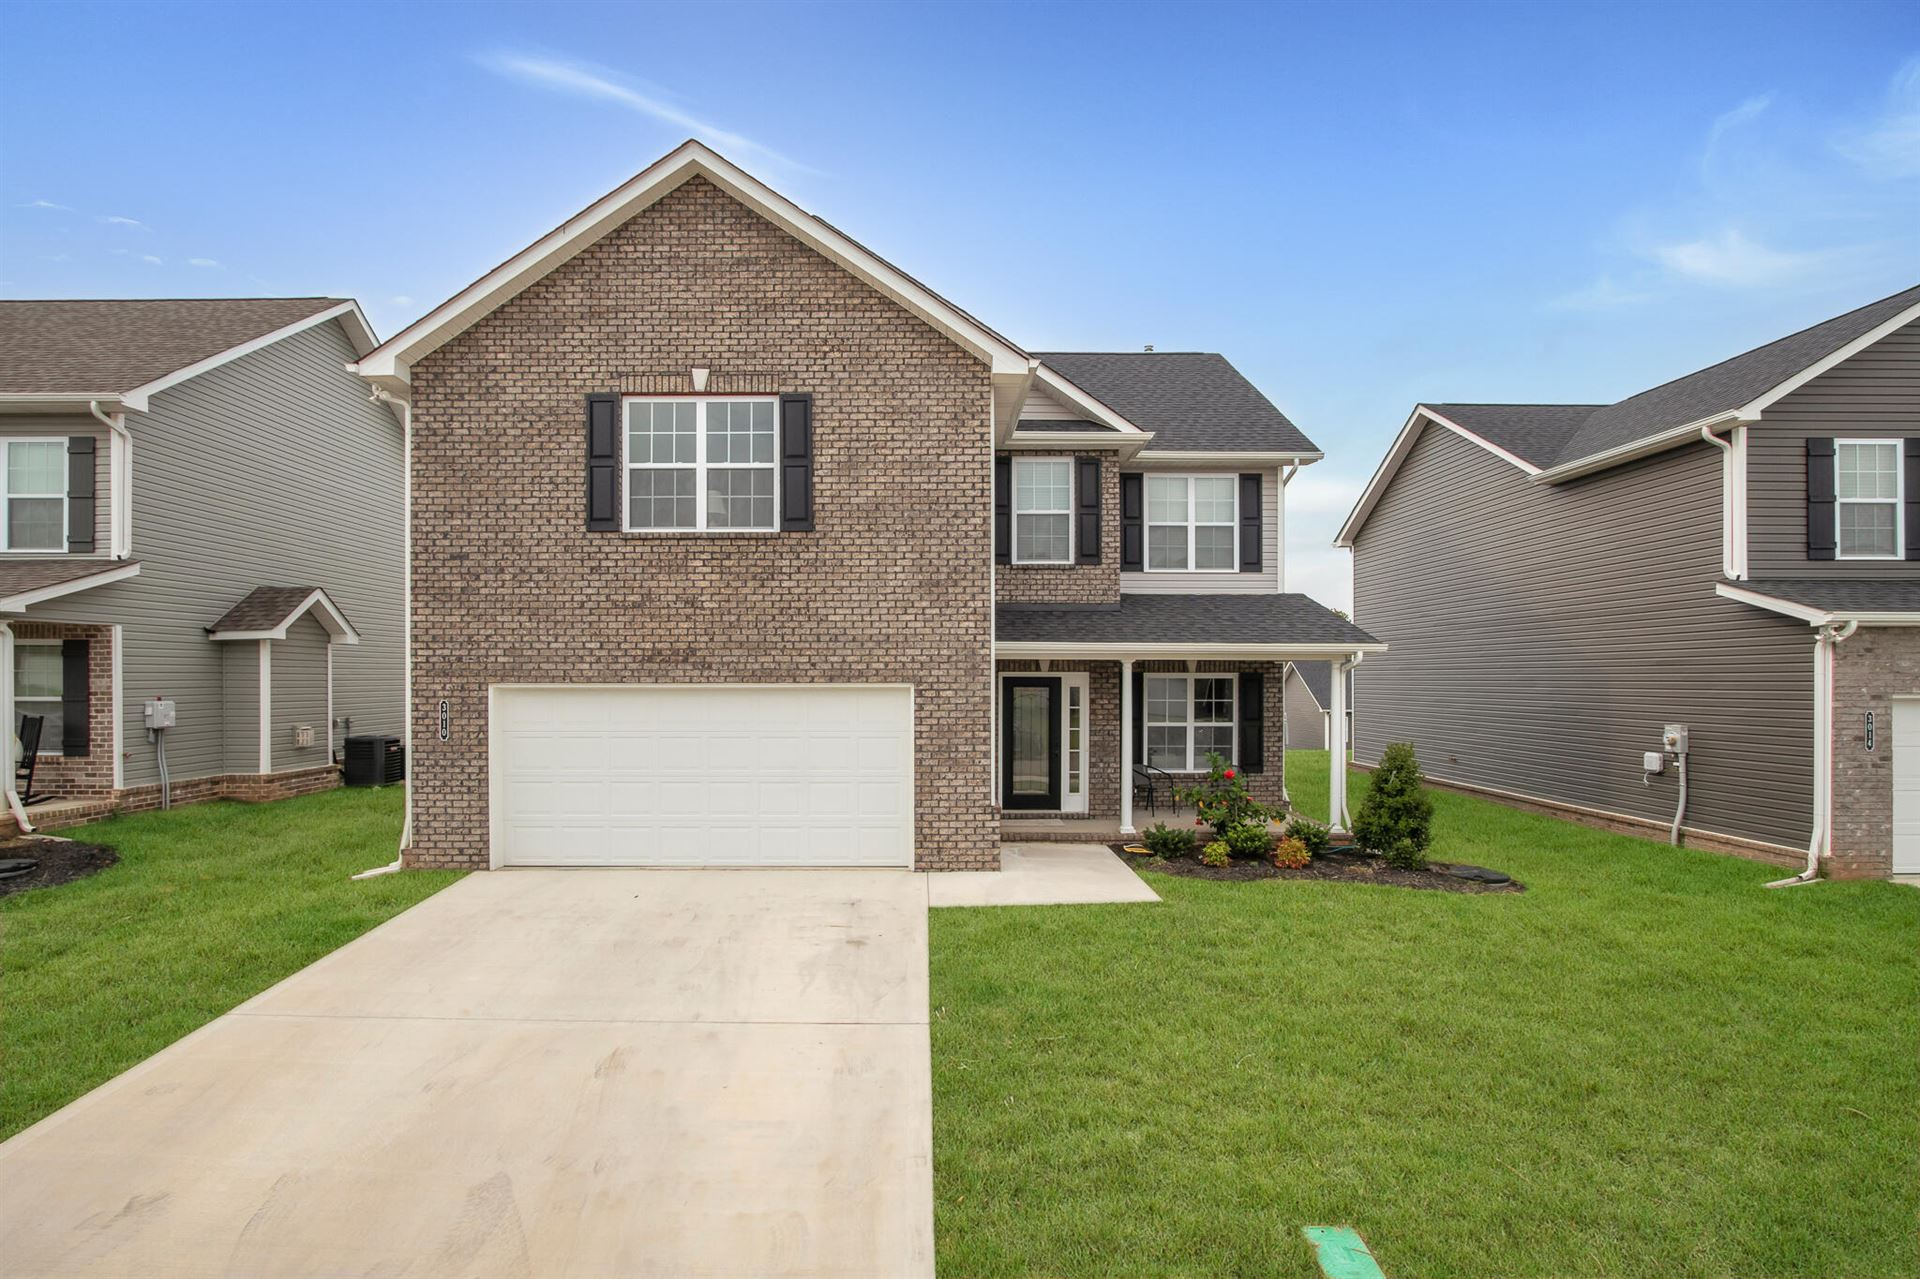 Photo of 3010 Lazy River Drive, Knoxville, TN 37931 (MLS # 1167856)